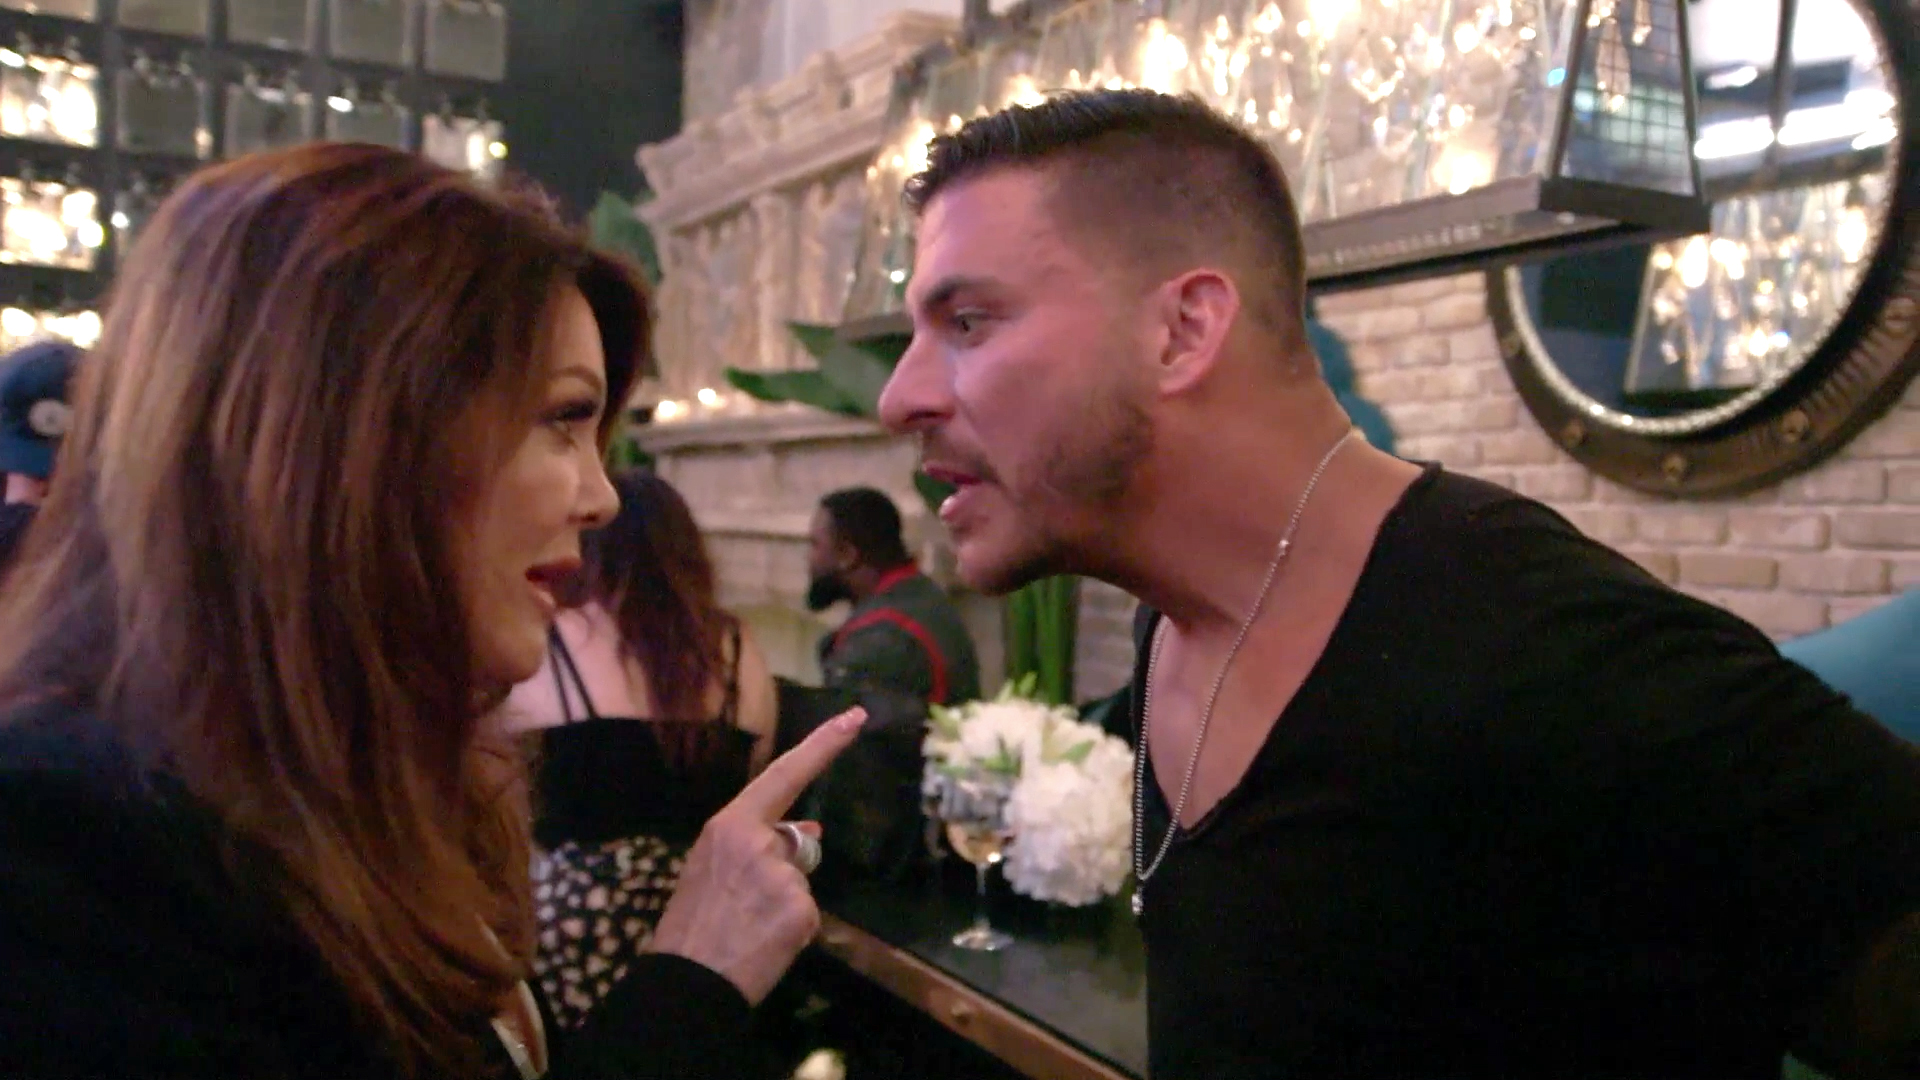 Jax Taylor Calls Vanderpump Rules His Show